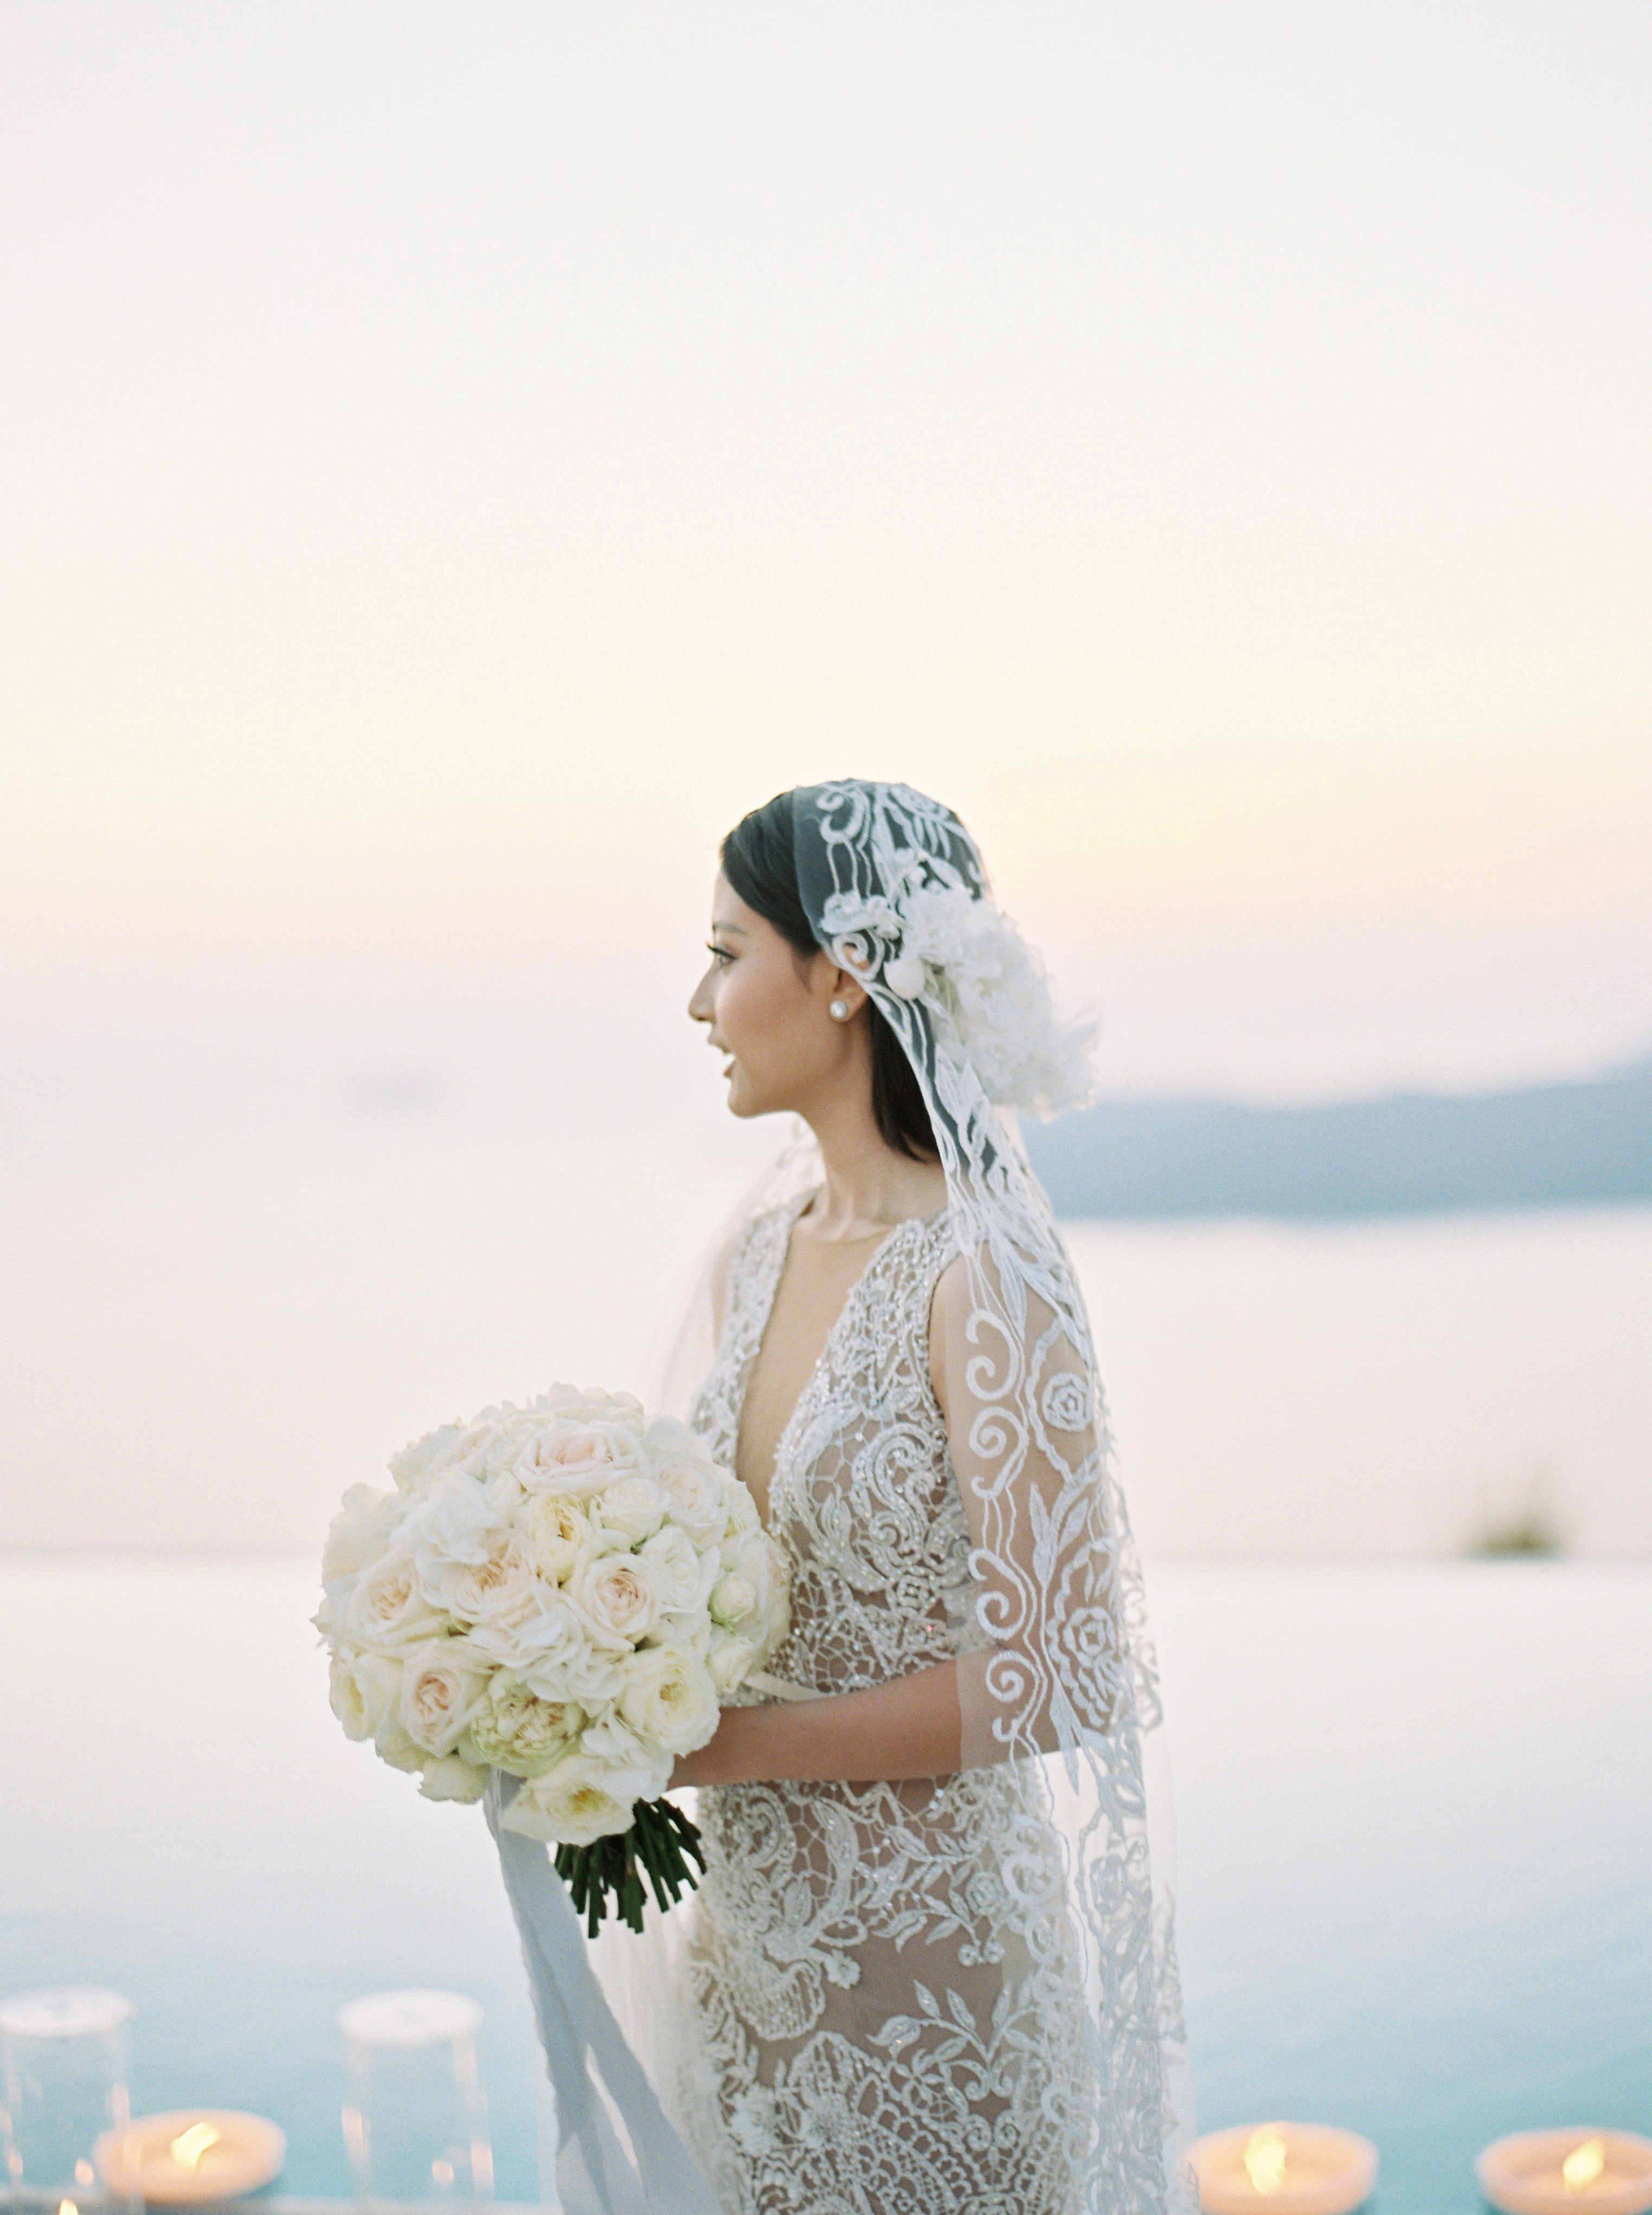 angie prayogo greece wedding bouquet flowers bride